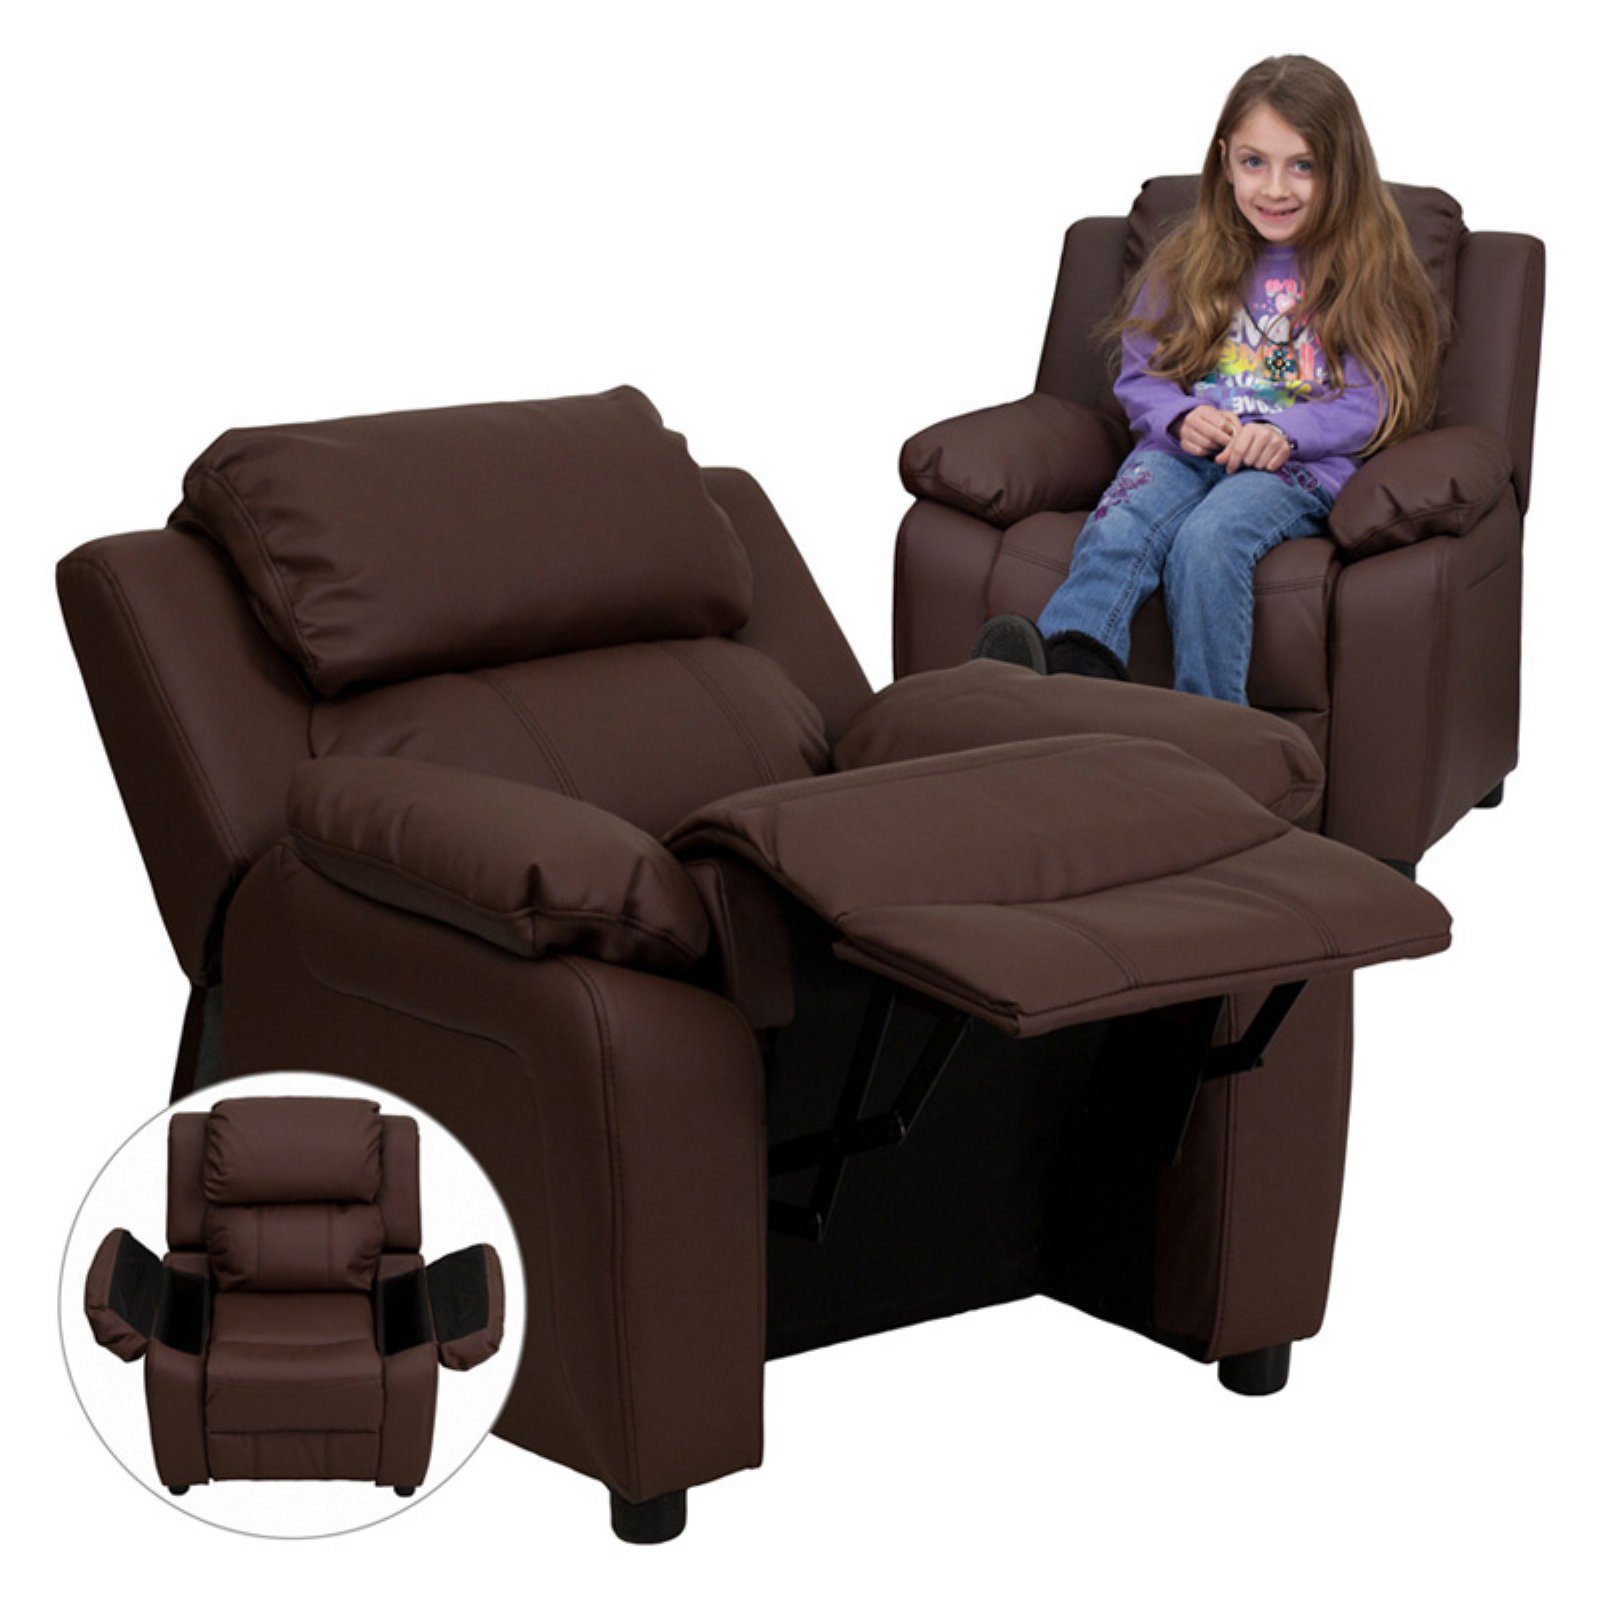 Flash Furniture Kids' Leather Recliner with Storage Arms, Multiple Colors